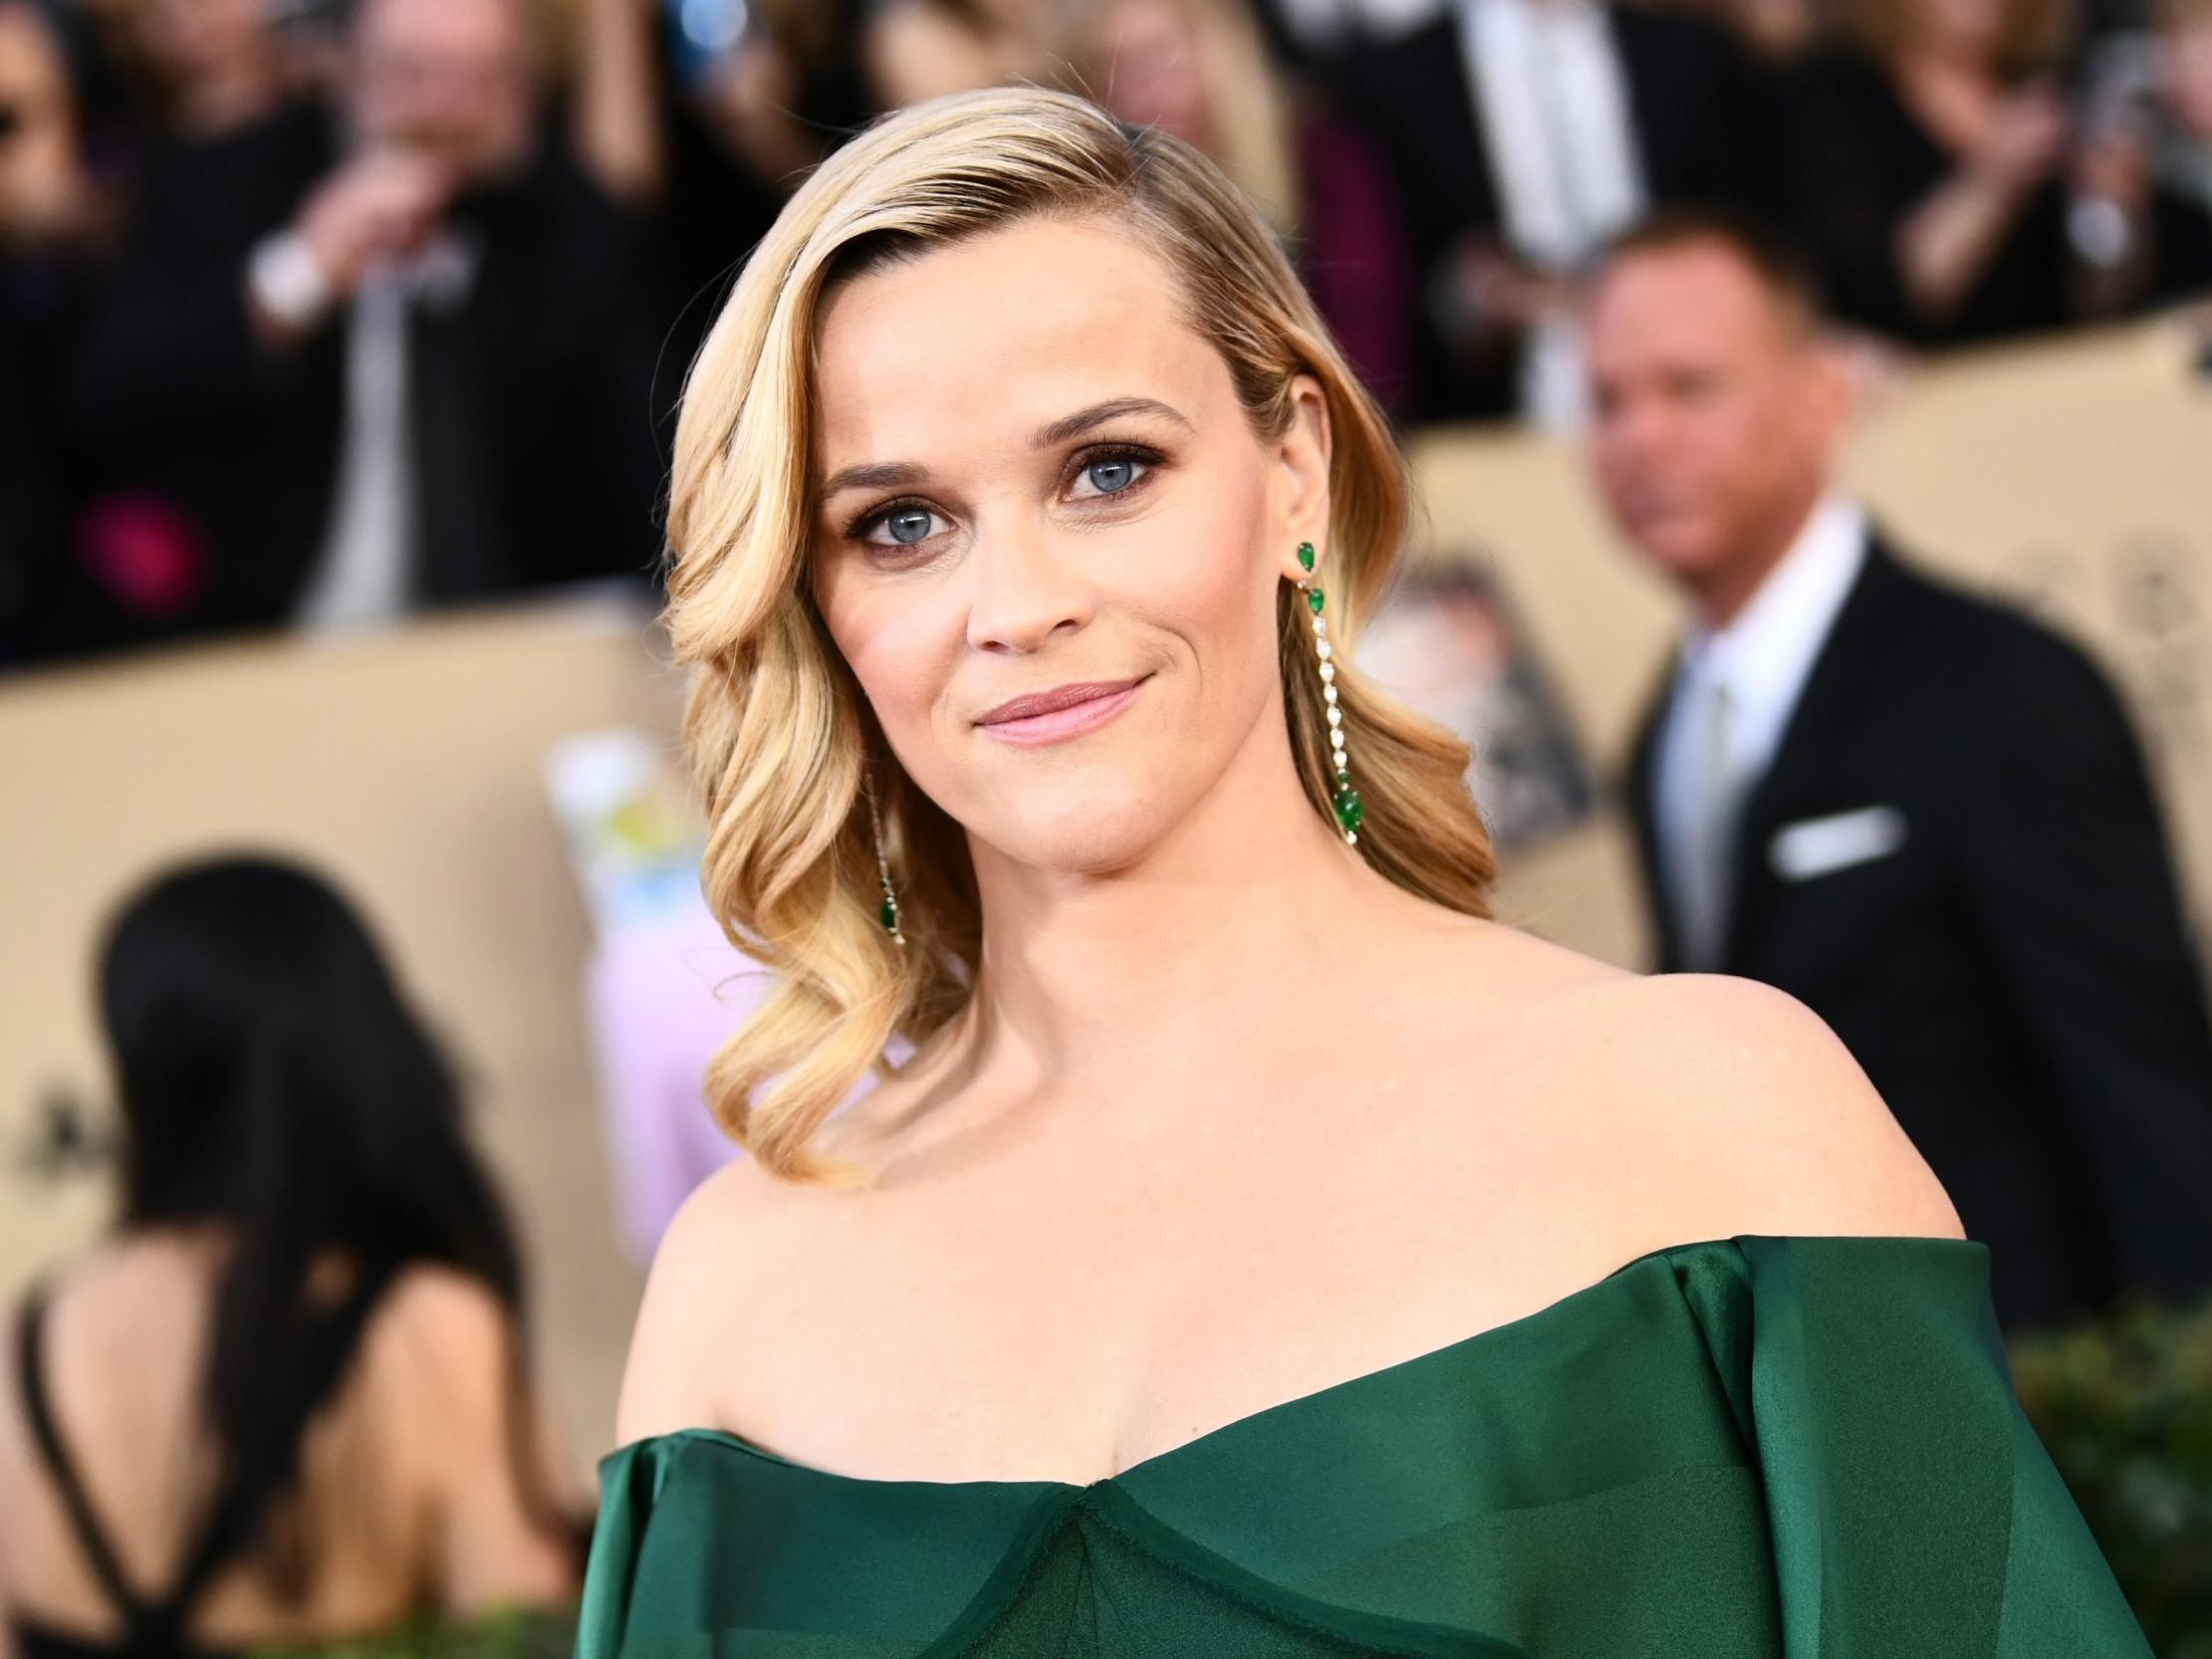 Reese Witherspoon kept 77 pairs of Jimmy Choos after Legally Blonde